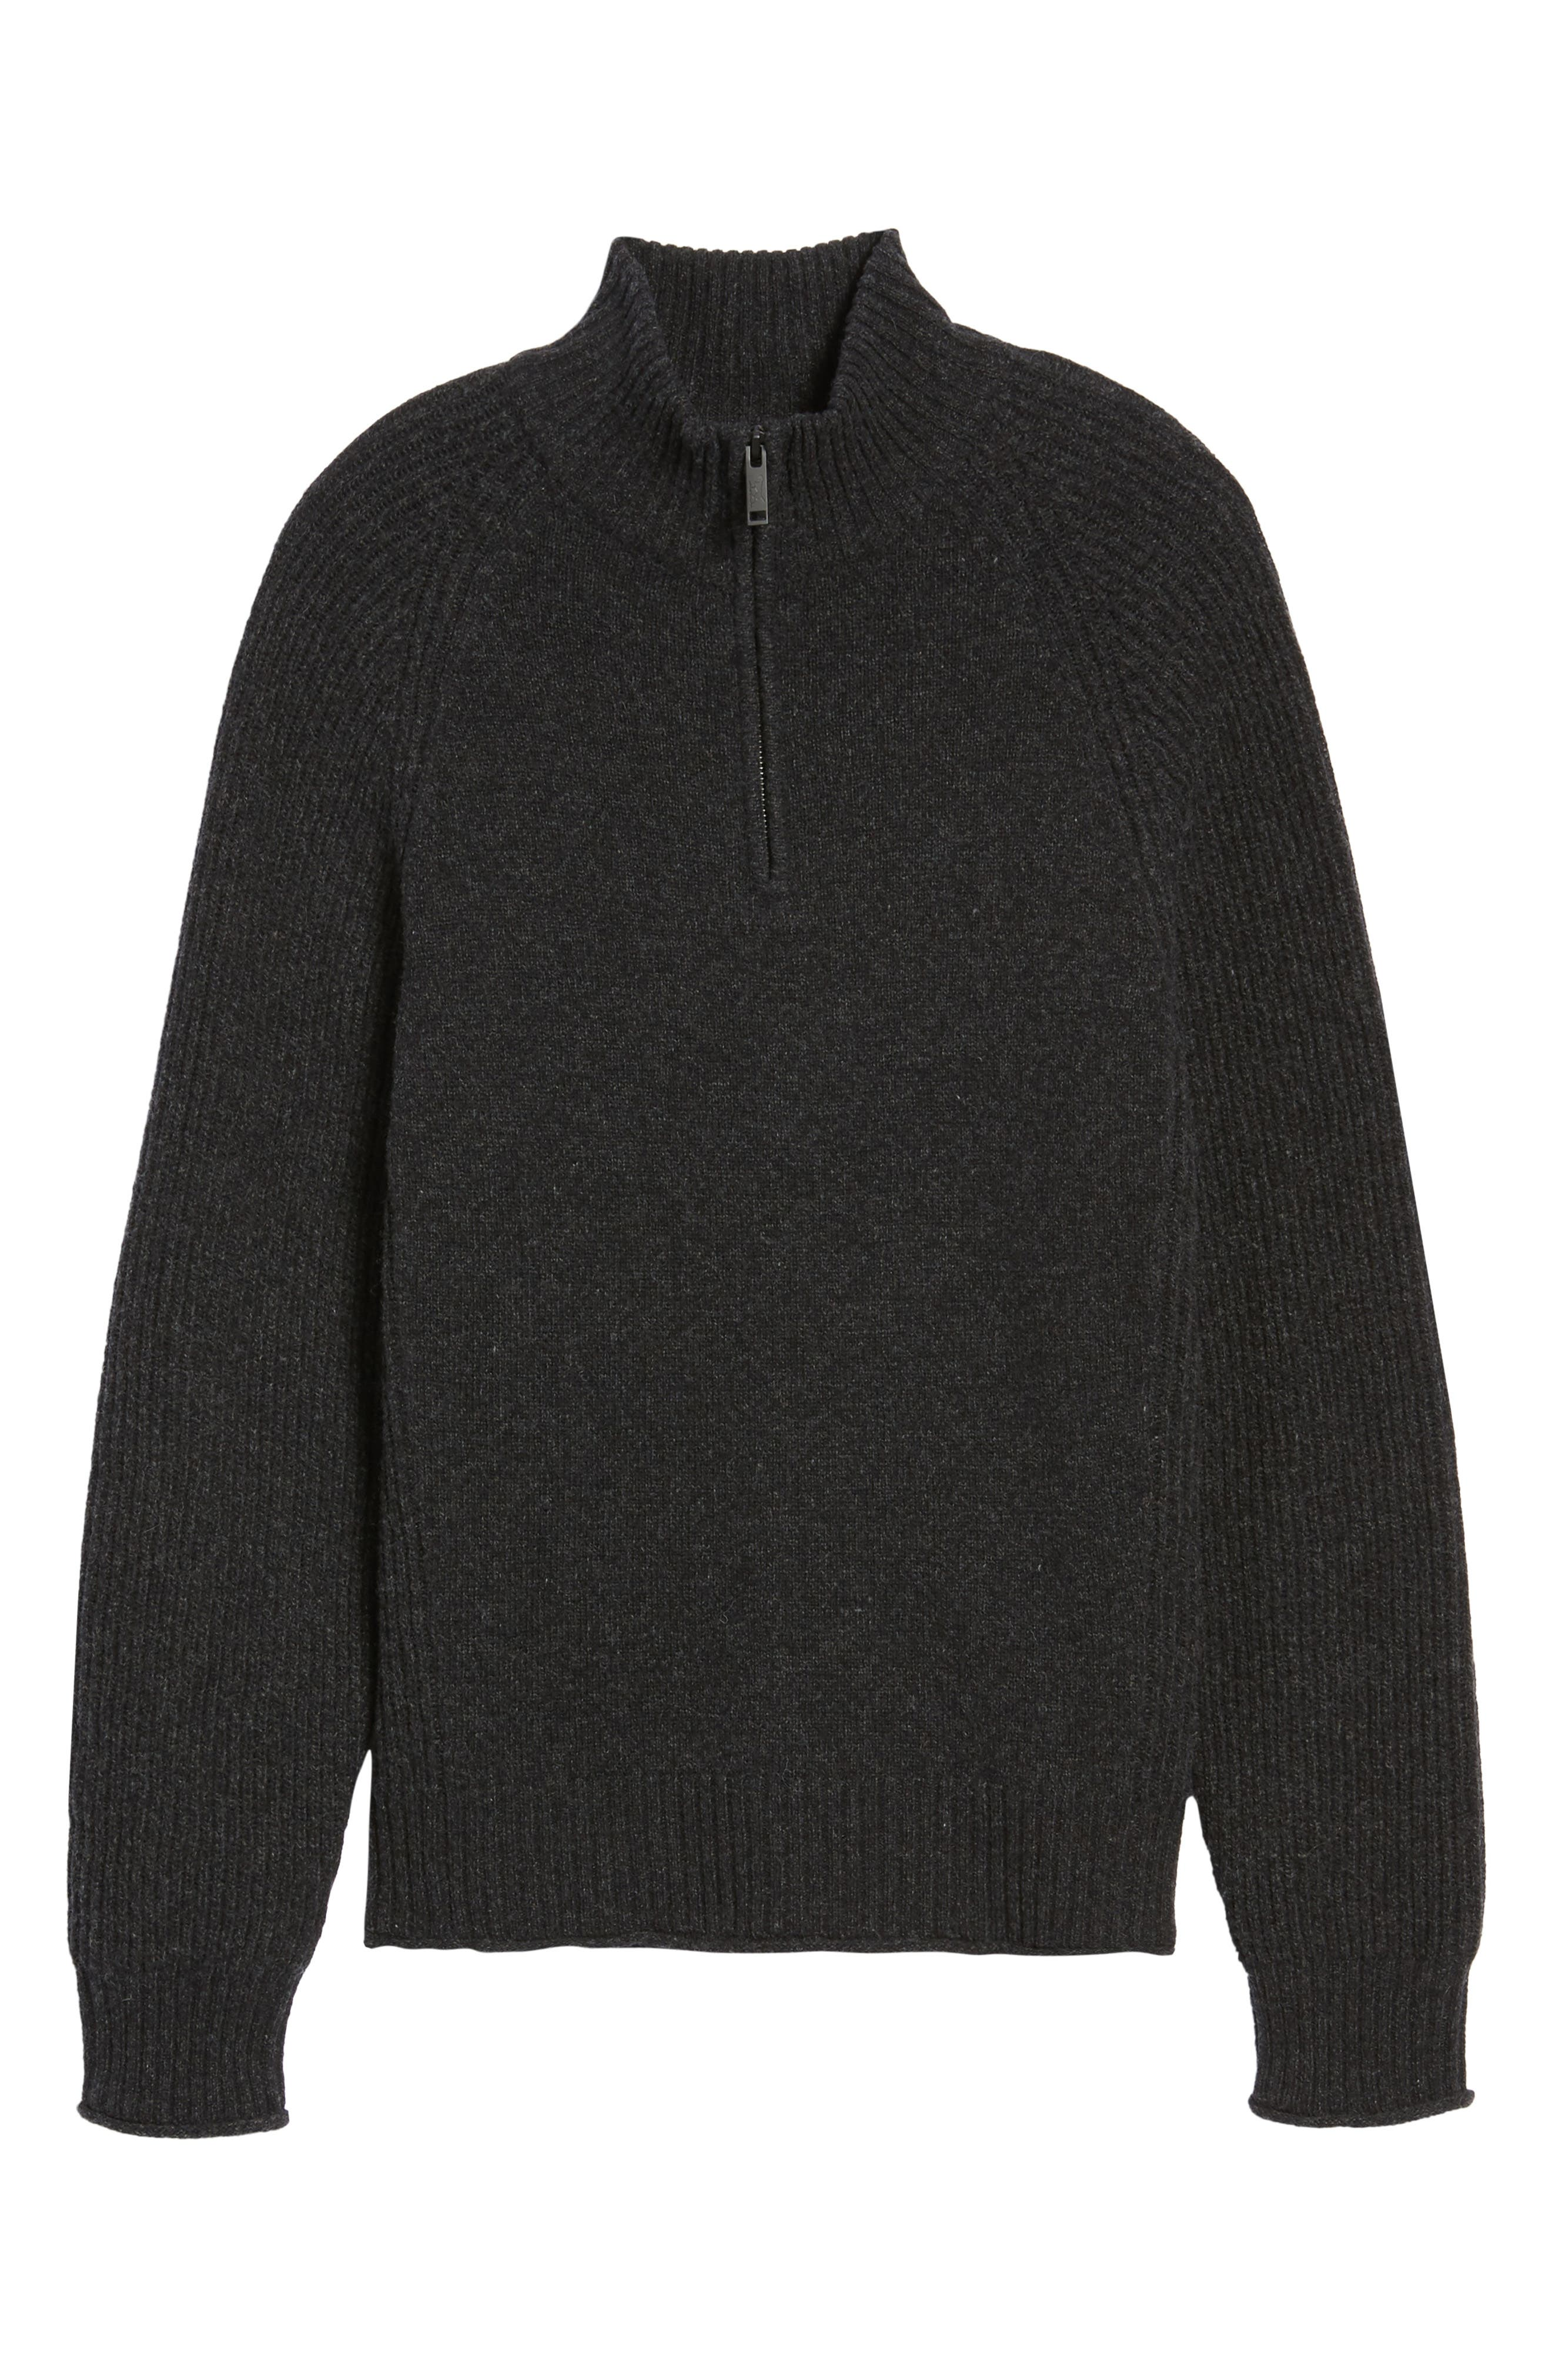 Stredwick Lambswool Sweater,                             Alternate thumbnail 6, color,                             021